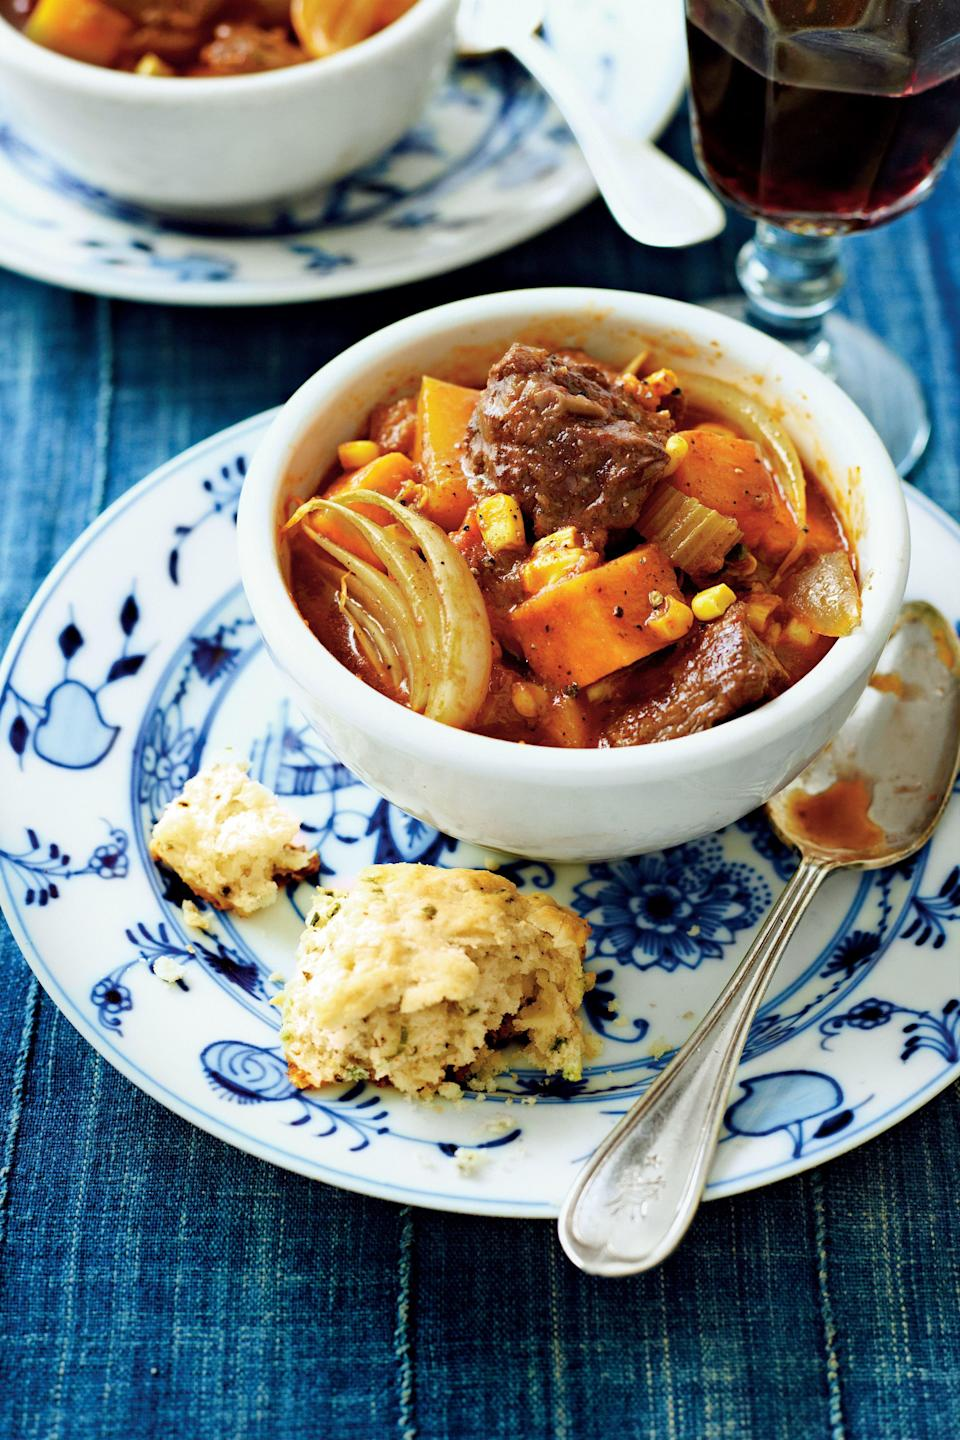 """<p><strong>Recipe:</strong> <a href=""""http://www.myrecipes.com/recipe/spiced-beef-stew-50400000124735/"""" rel=""""nofollow noopener"""" target=""""_blank"""" data-ylk=""""slk:Spiced Beef Stew with Sweet Potatoes"""" class=""""link rapid-noclick-resp""""><strong>Spiced Beef Stew with Sweet Potatoes</strong></a></p> <p>A chuck roast paired with sweet potatoes and butternut squash will hit the spot on the chilliest winter nights.</p>"""